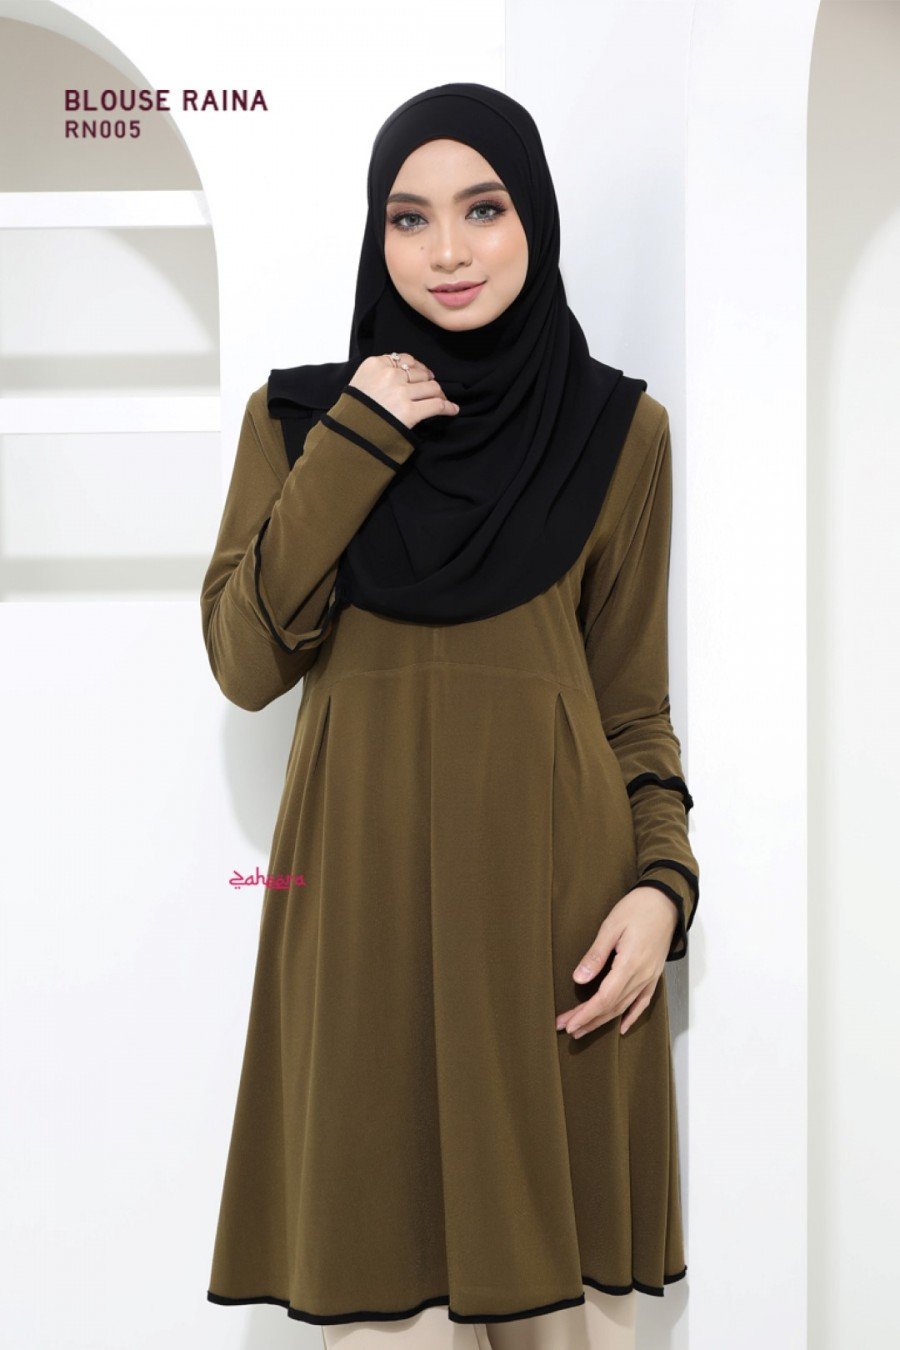 BLOUSE IRONLESS TRAVEL FRIENDLY RAINA RN005 1